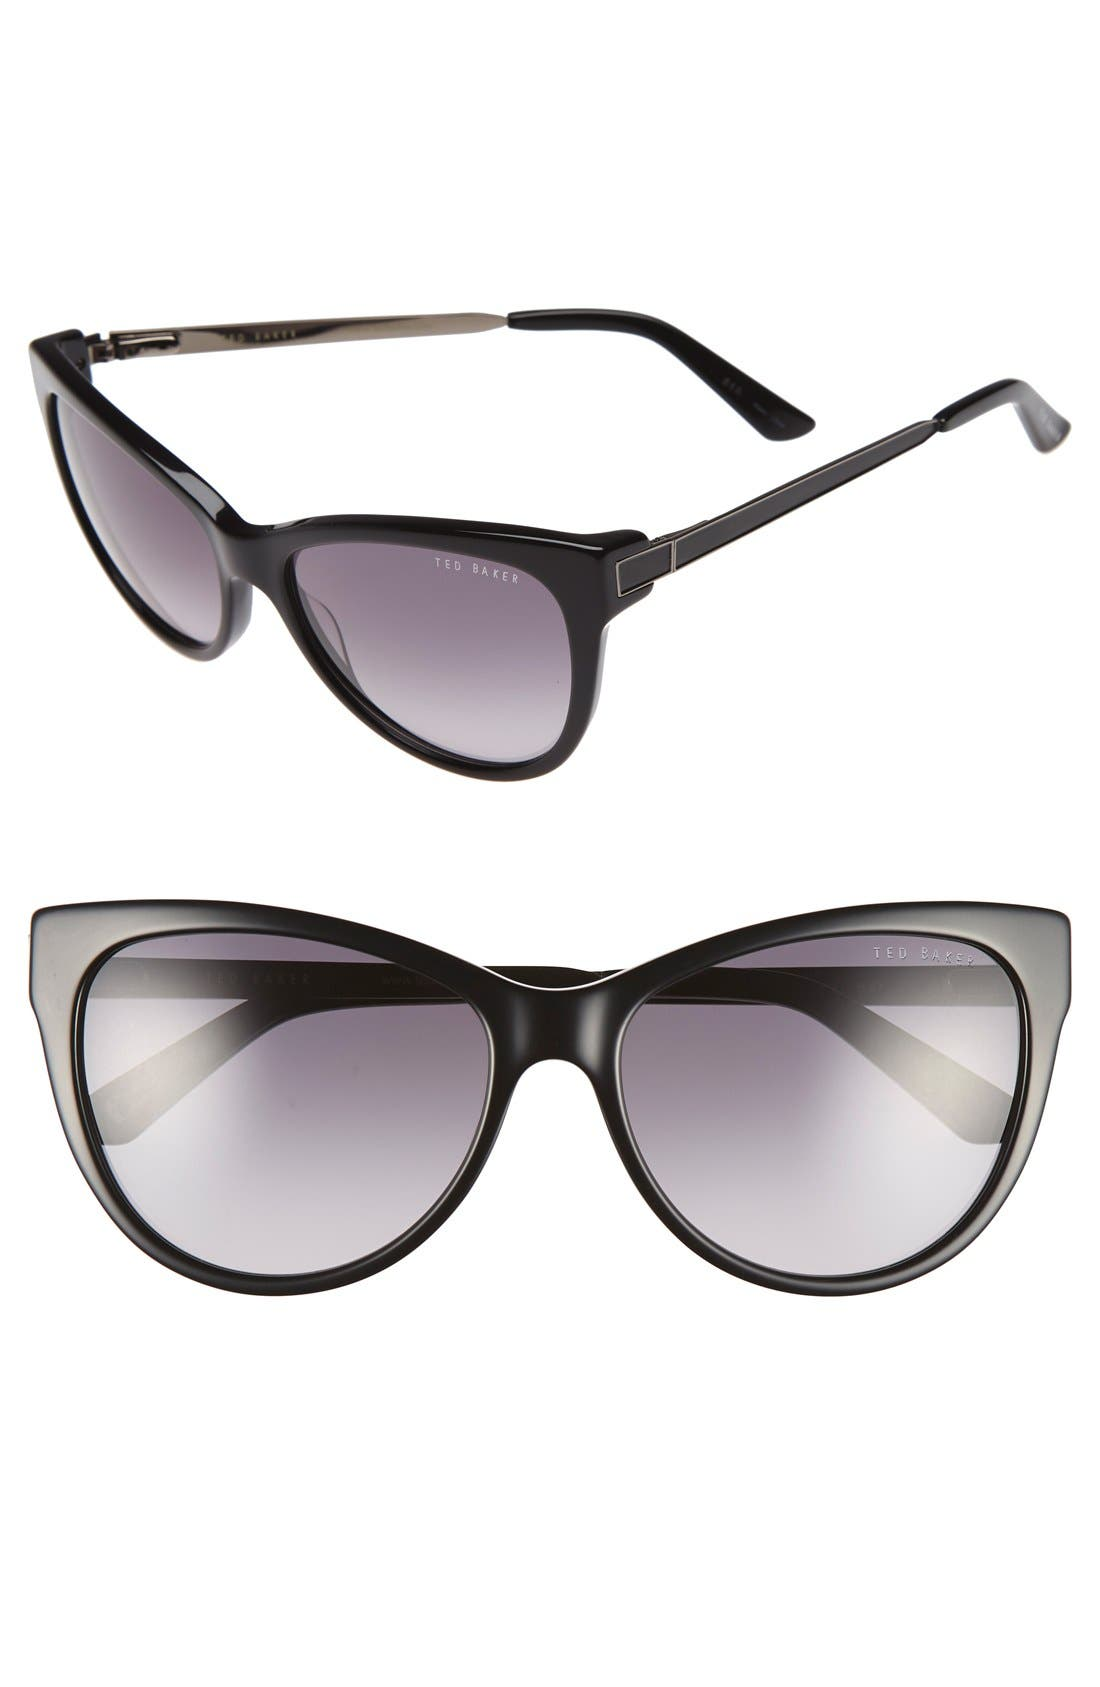 57mm Cat Eye Sunglasses,                         Main,                         color, 001